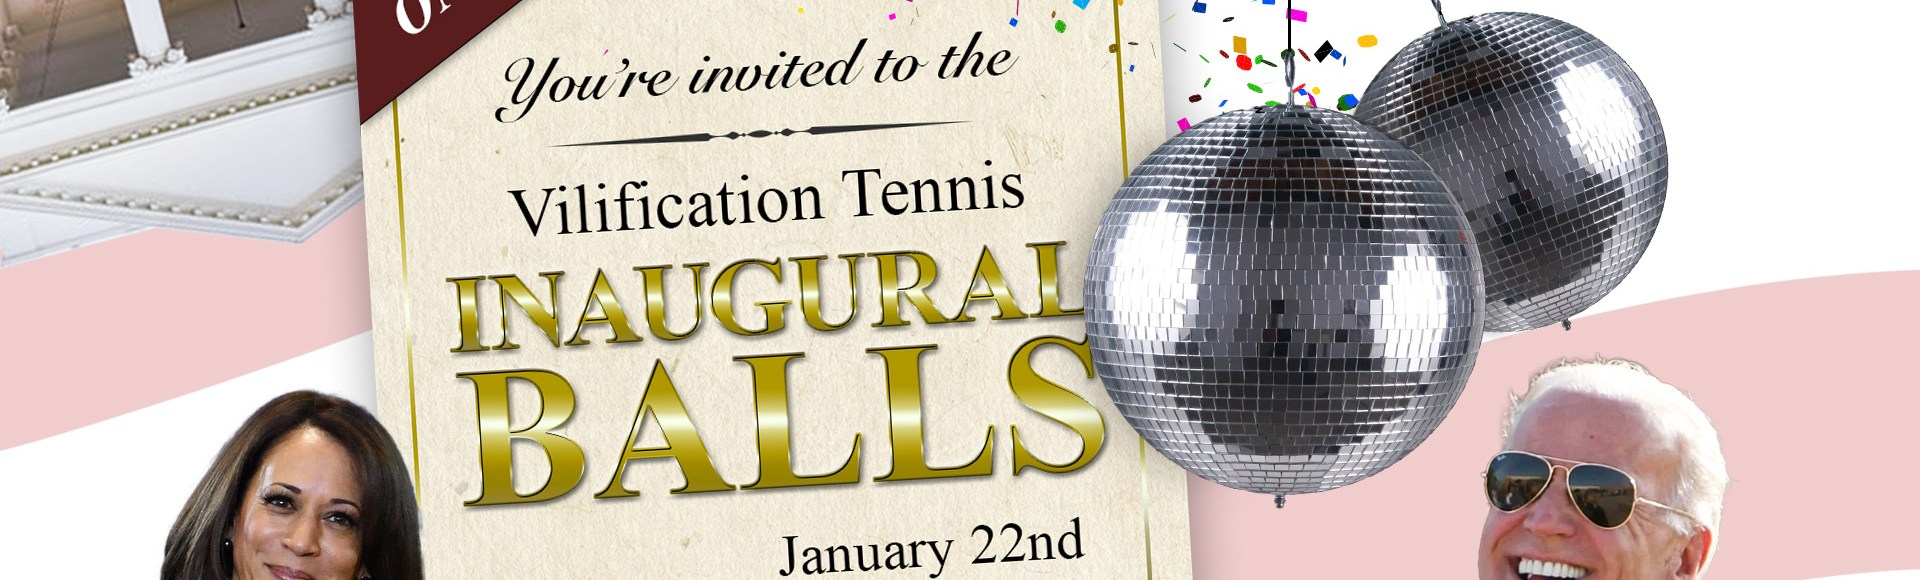 01/22/21: Vilification Tennis Inaugural Balls